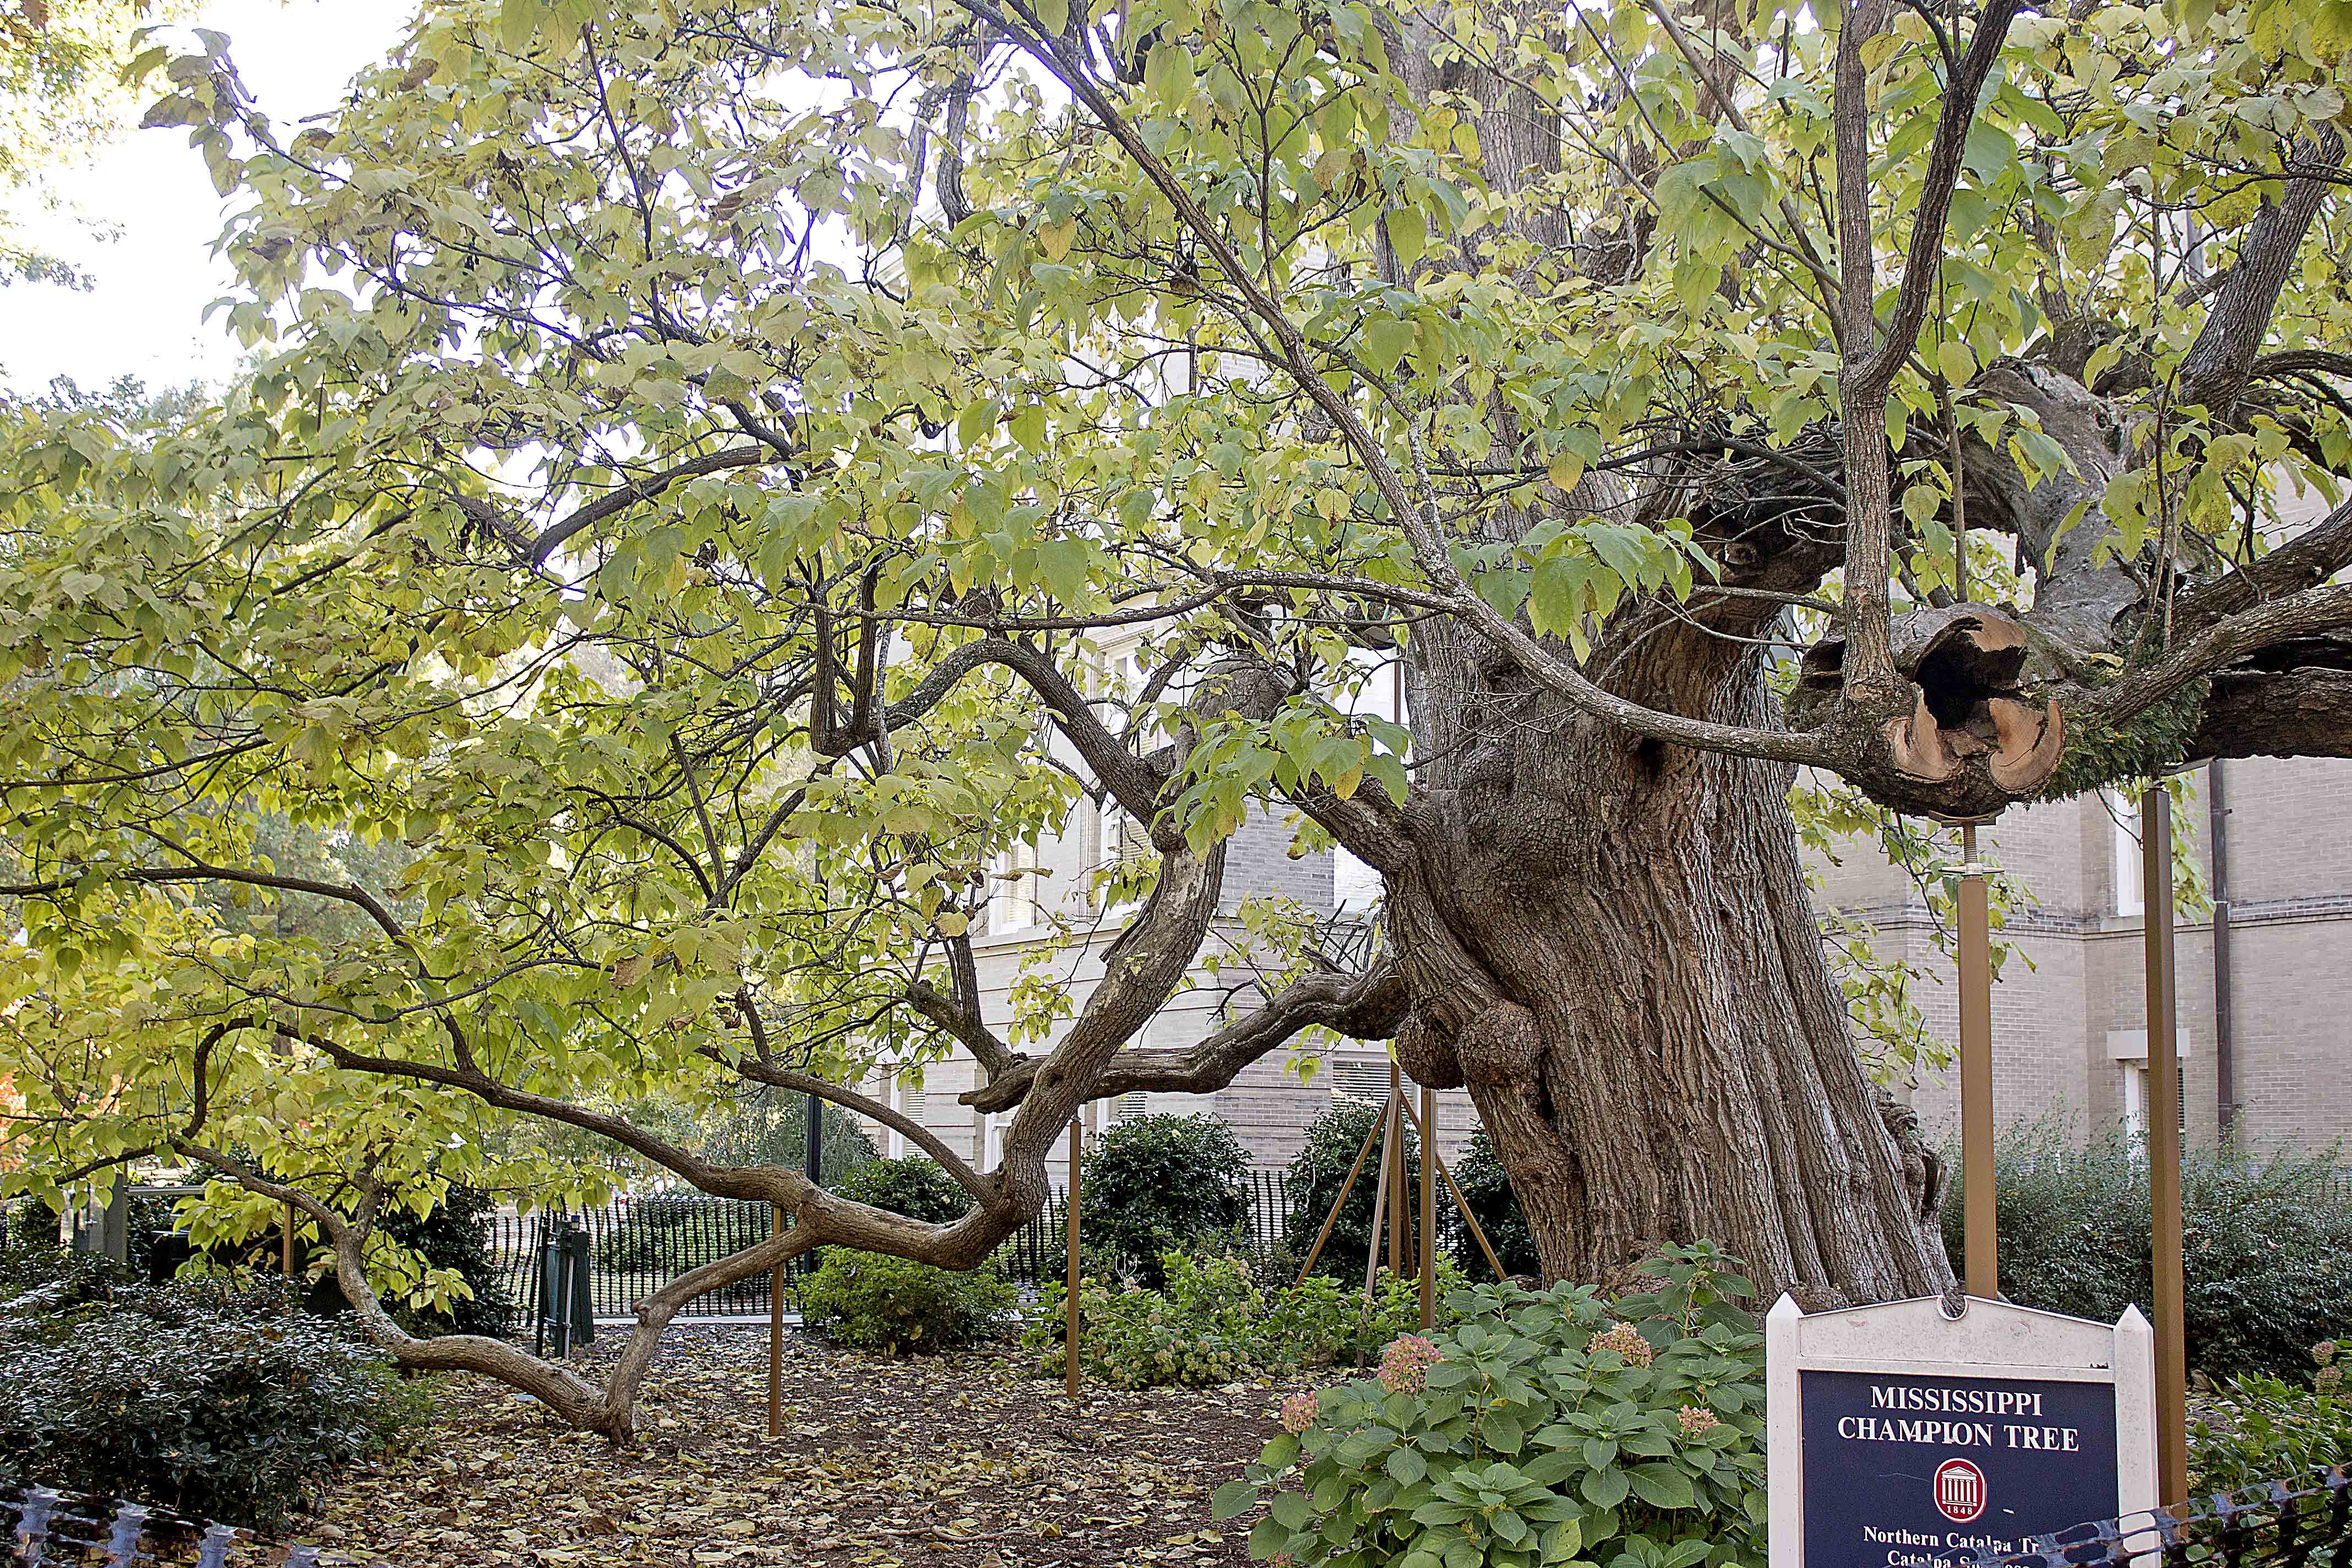 Campus 'champion trees' endure despite wear and tear - The Daily ...